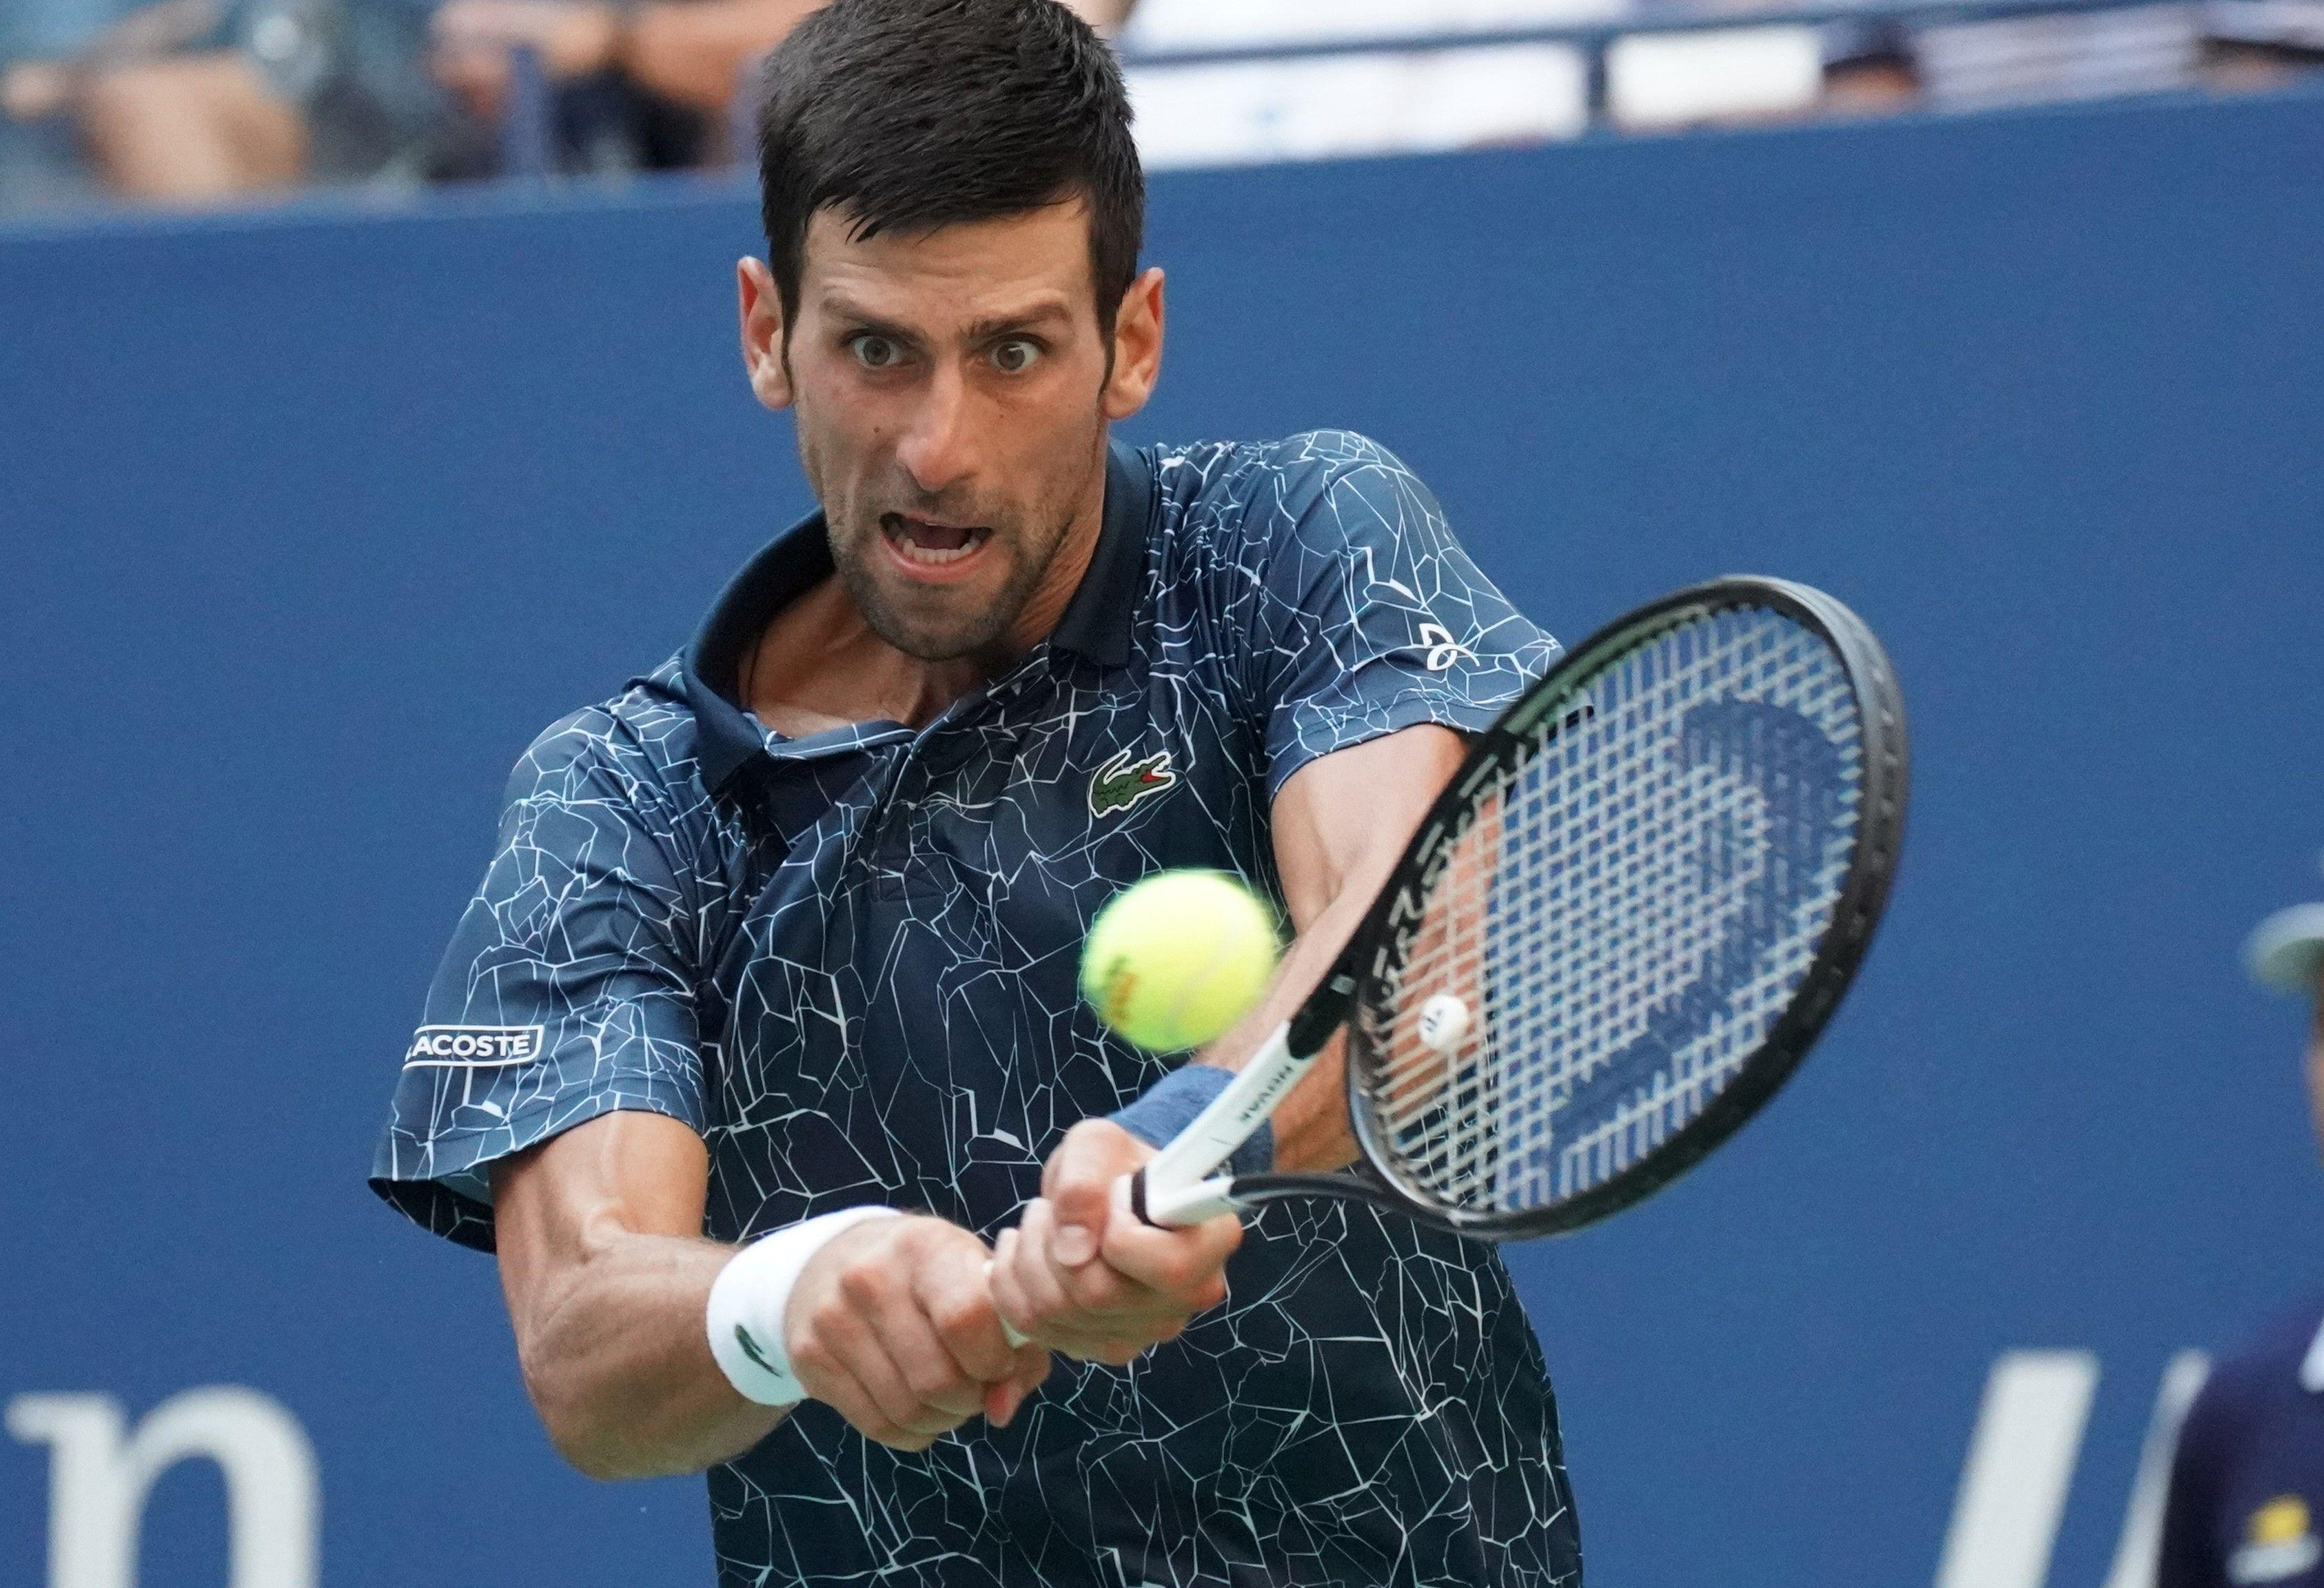 It took exactly two hours for Djokovic to see off the challenge of the unseeded Sousa